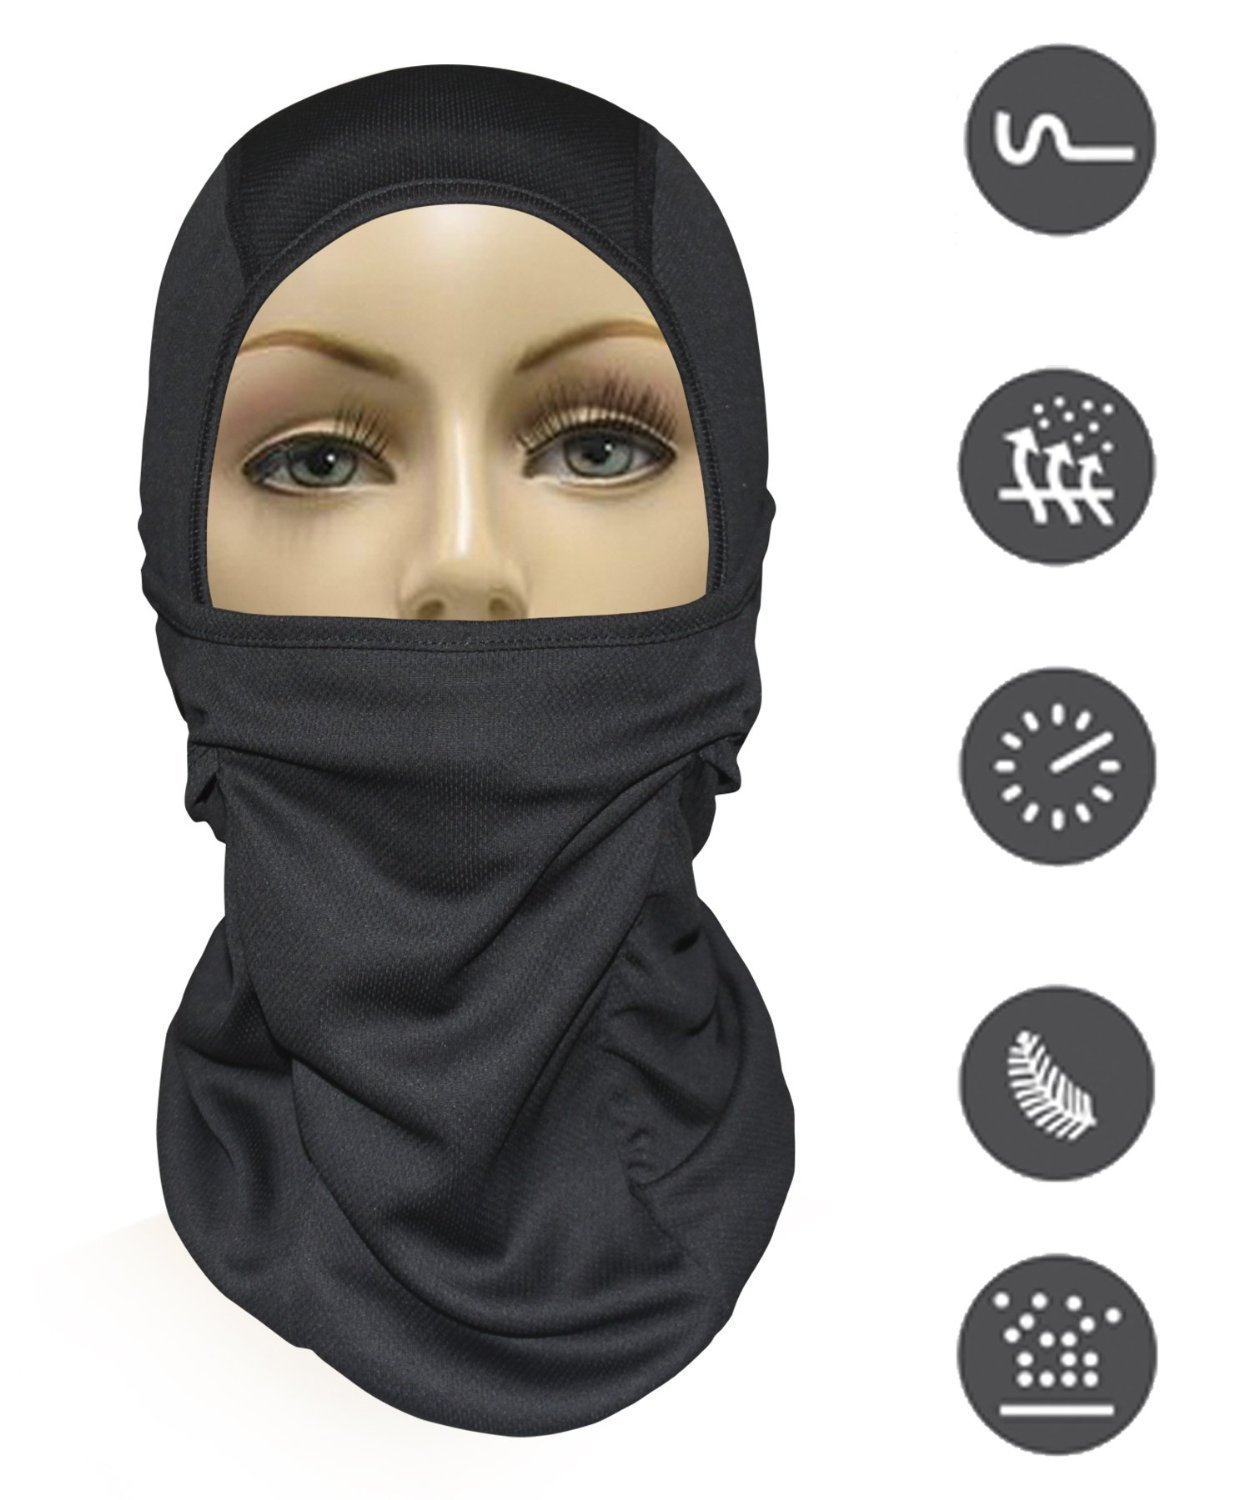 MJ Gear [9 in 1] Full Face Mask Motorcycle Balaclava, Running Mask for Cold or Hot Weather Life Time Warranty (Black)